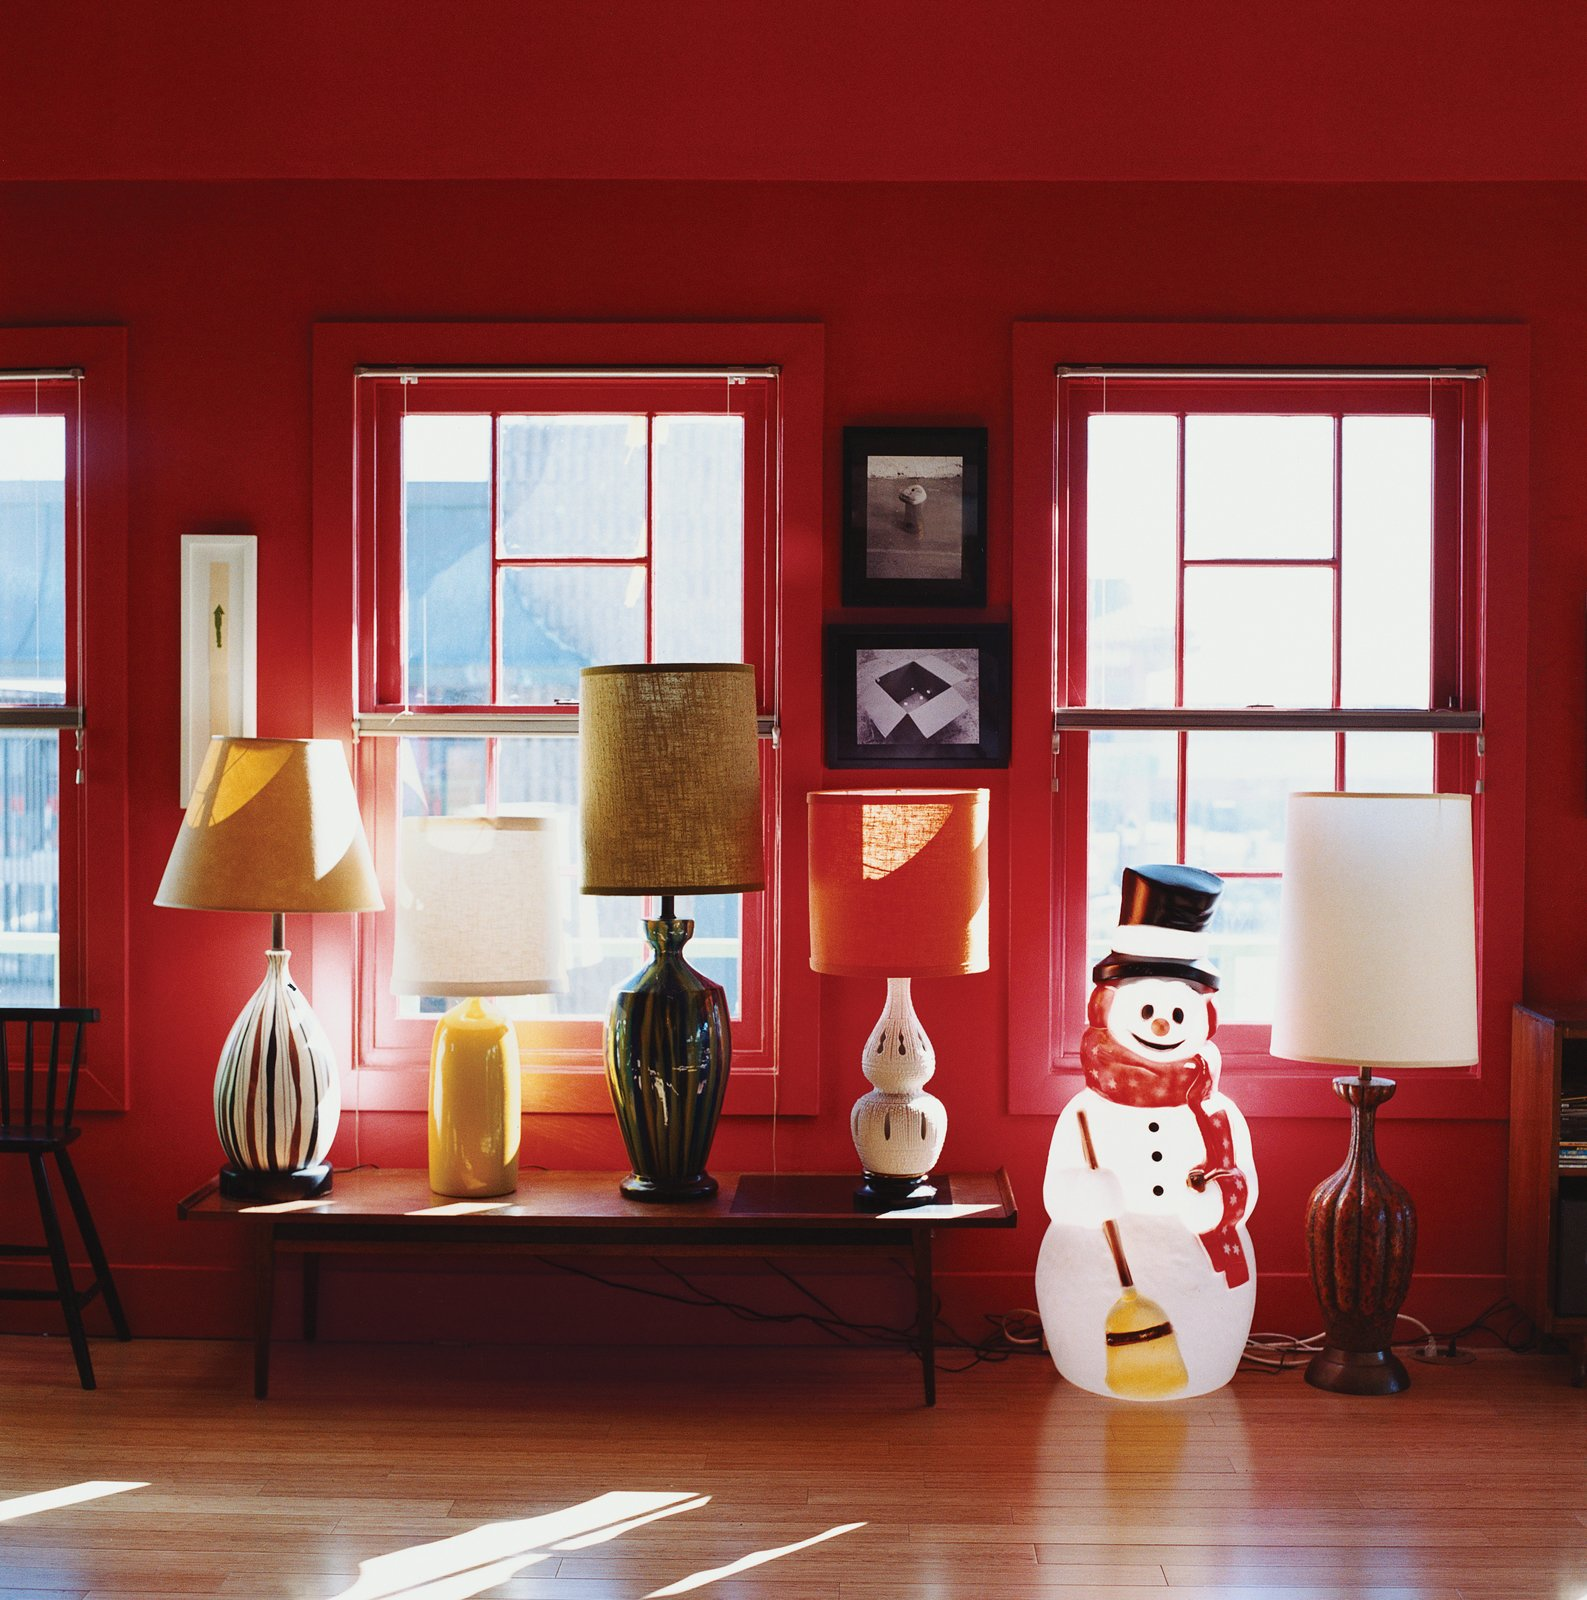 Thrift-store lamps and an illuminated snowman lend the loft a warm glow at night. Sun Mun Way Cool - Photo 3 of 10